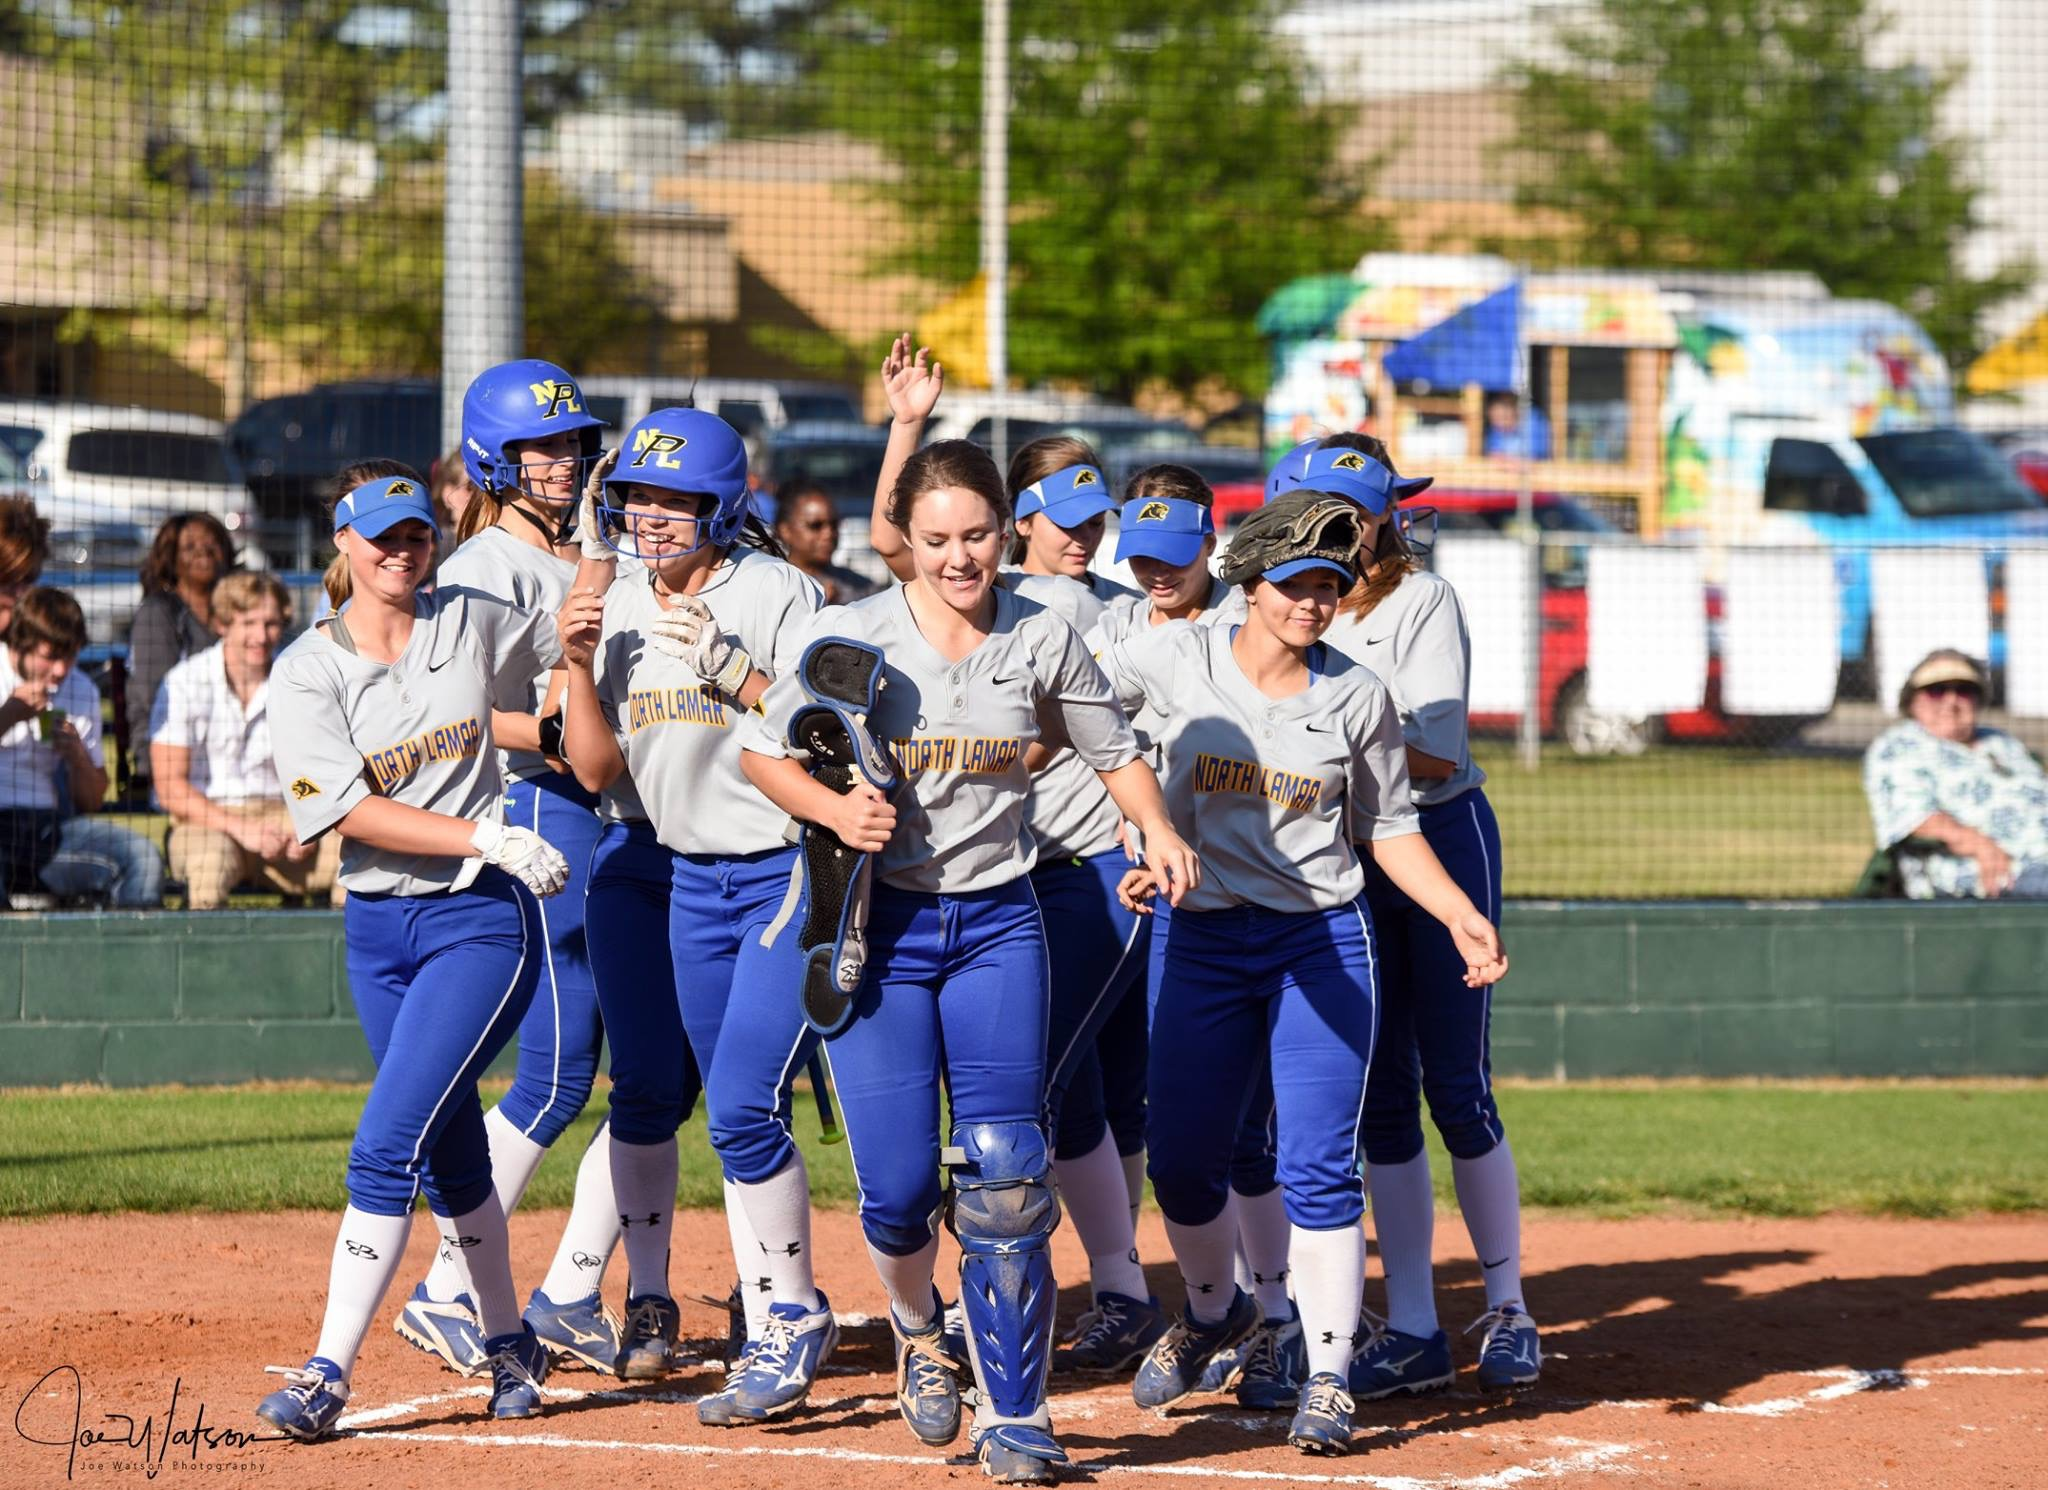 (Photo by Joe Watson) The Pantherettes congratulating Erin Scholl after her solo home run in the third inning Friday night.